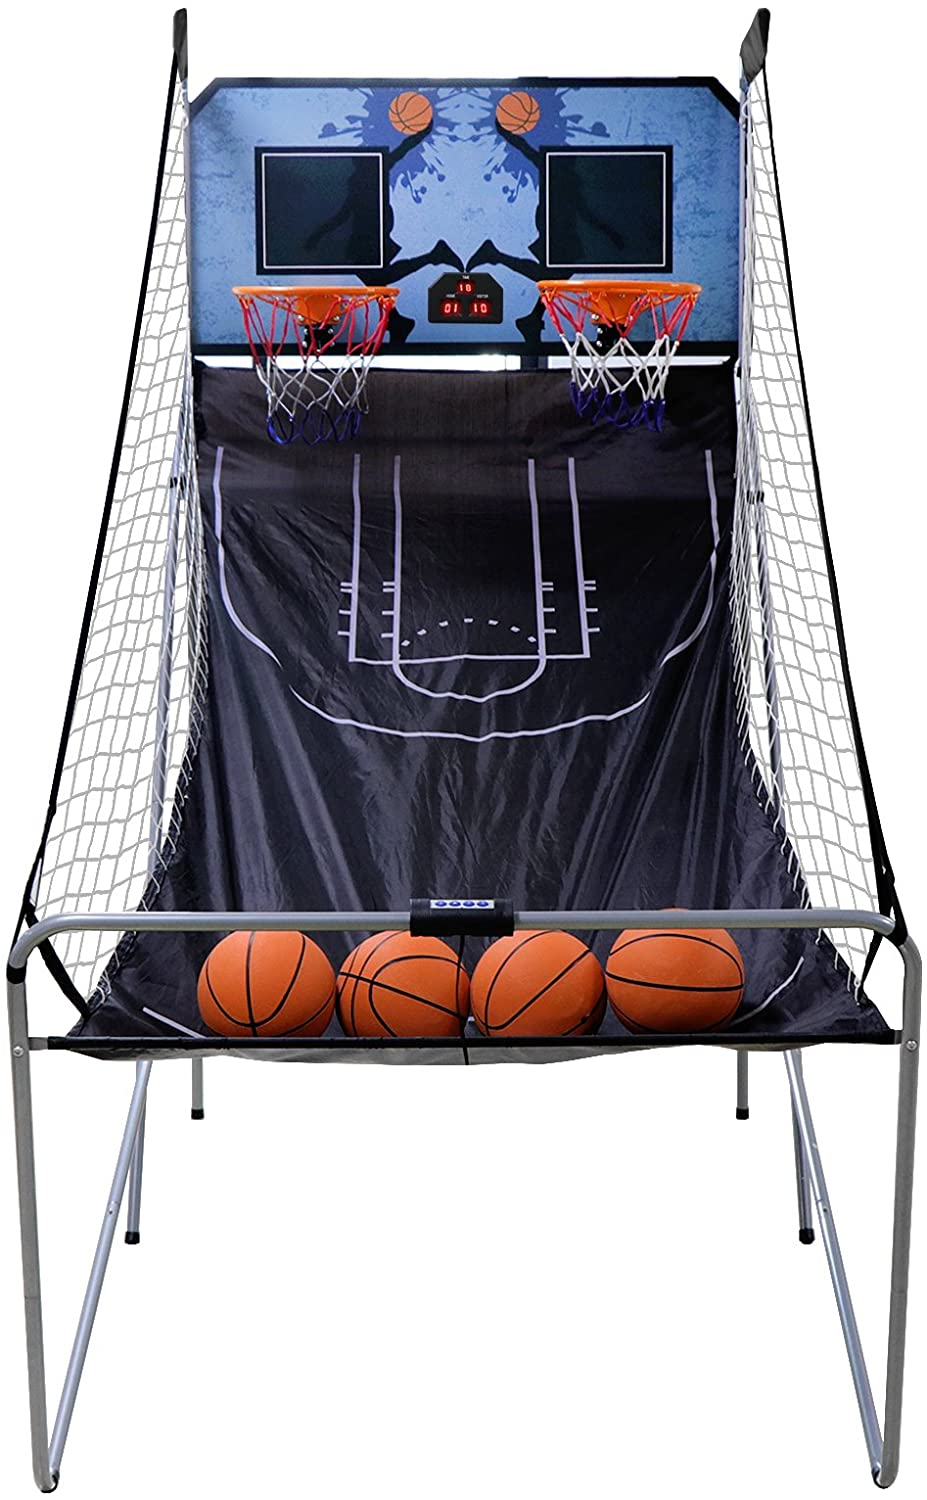 ZENY Dual Shot Basketball Arcade Game Folding Electronic Basketball Game for 2 Players LED Score Board Home Office Basketball Hoop with 4 Baeketballs and Pump